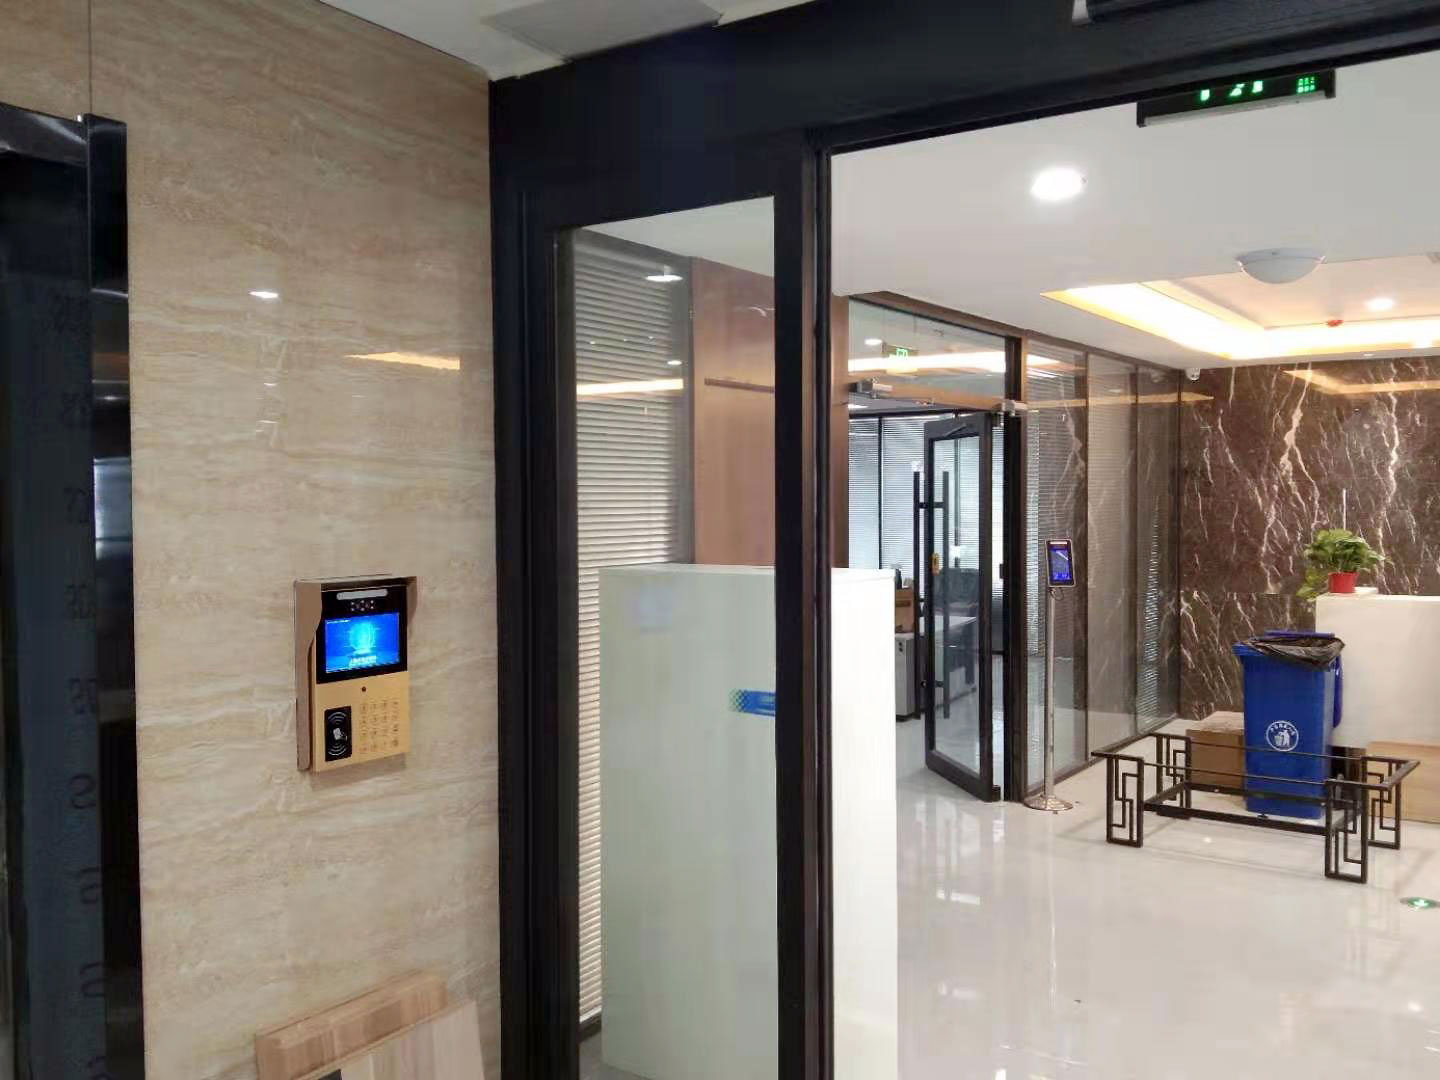 A law firm in Jining, Shandong